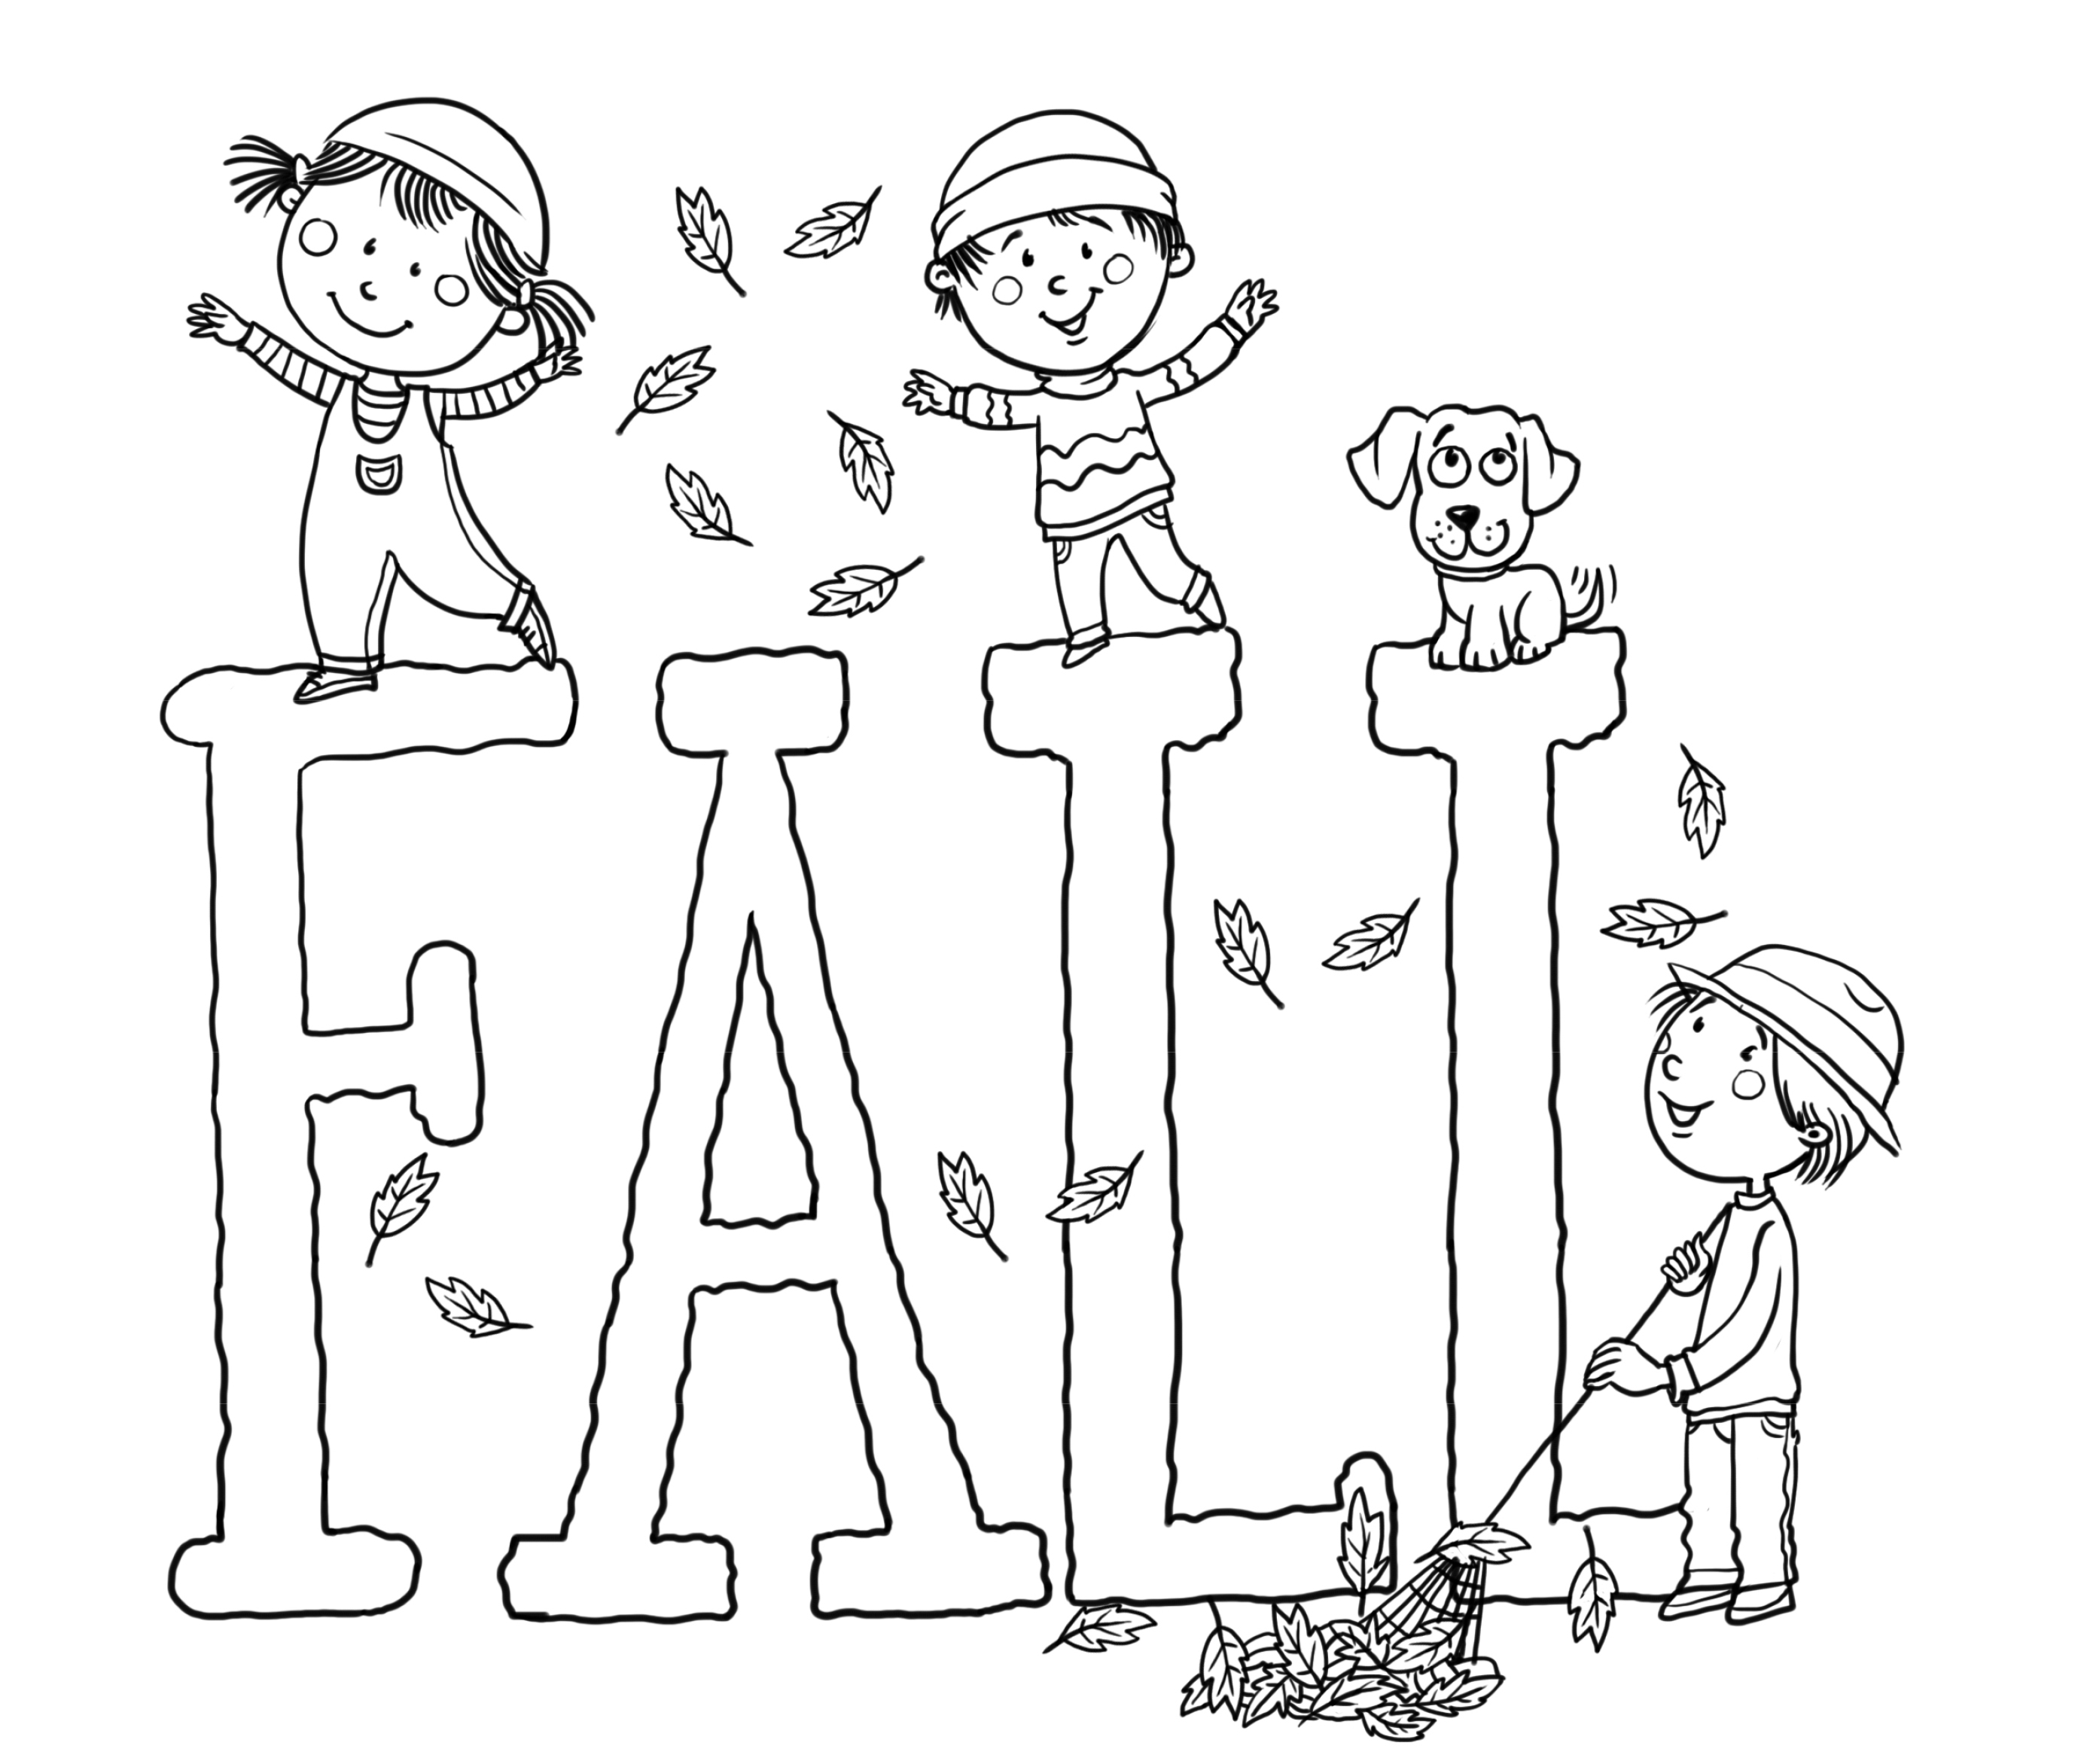 Color The Picture And Word Fall In This Fun Coloring Page For Kids